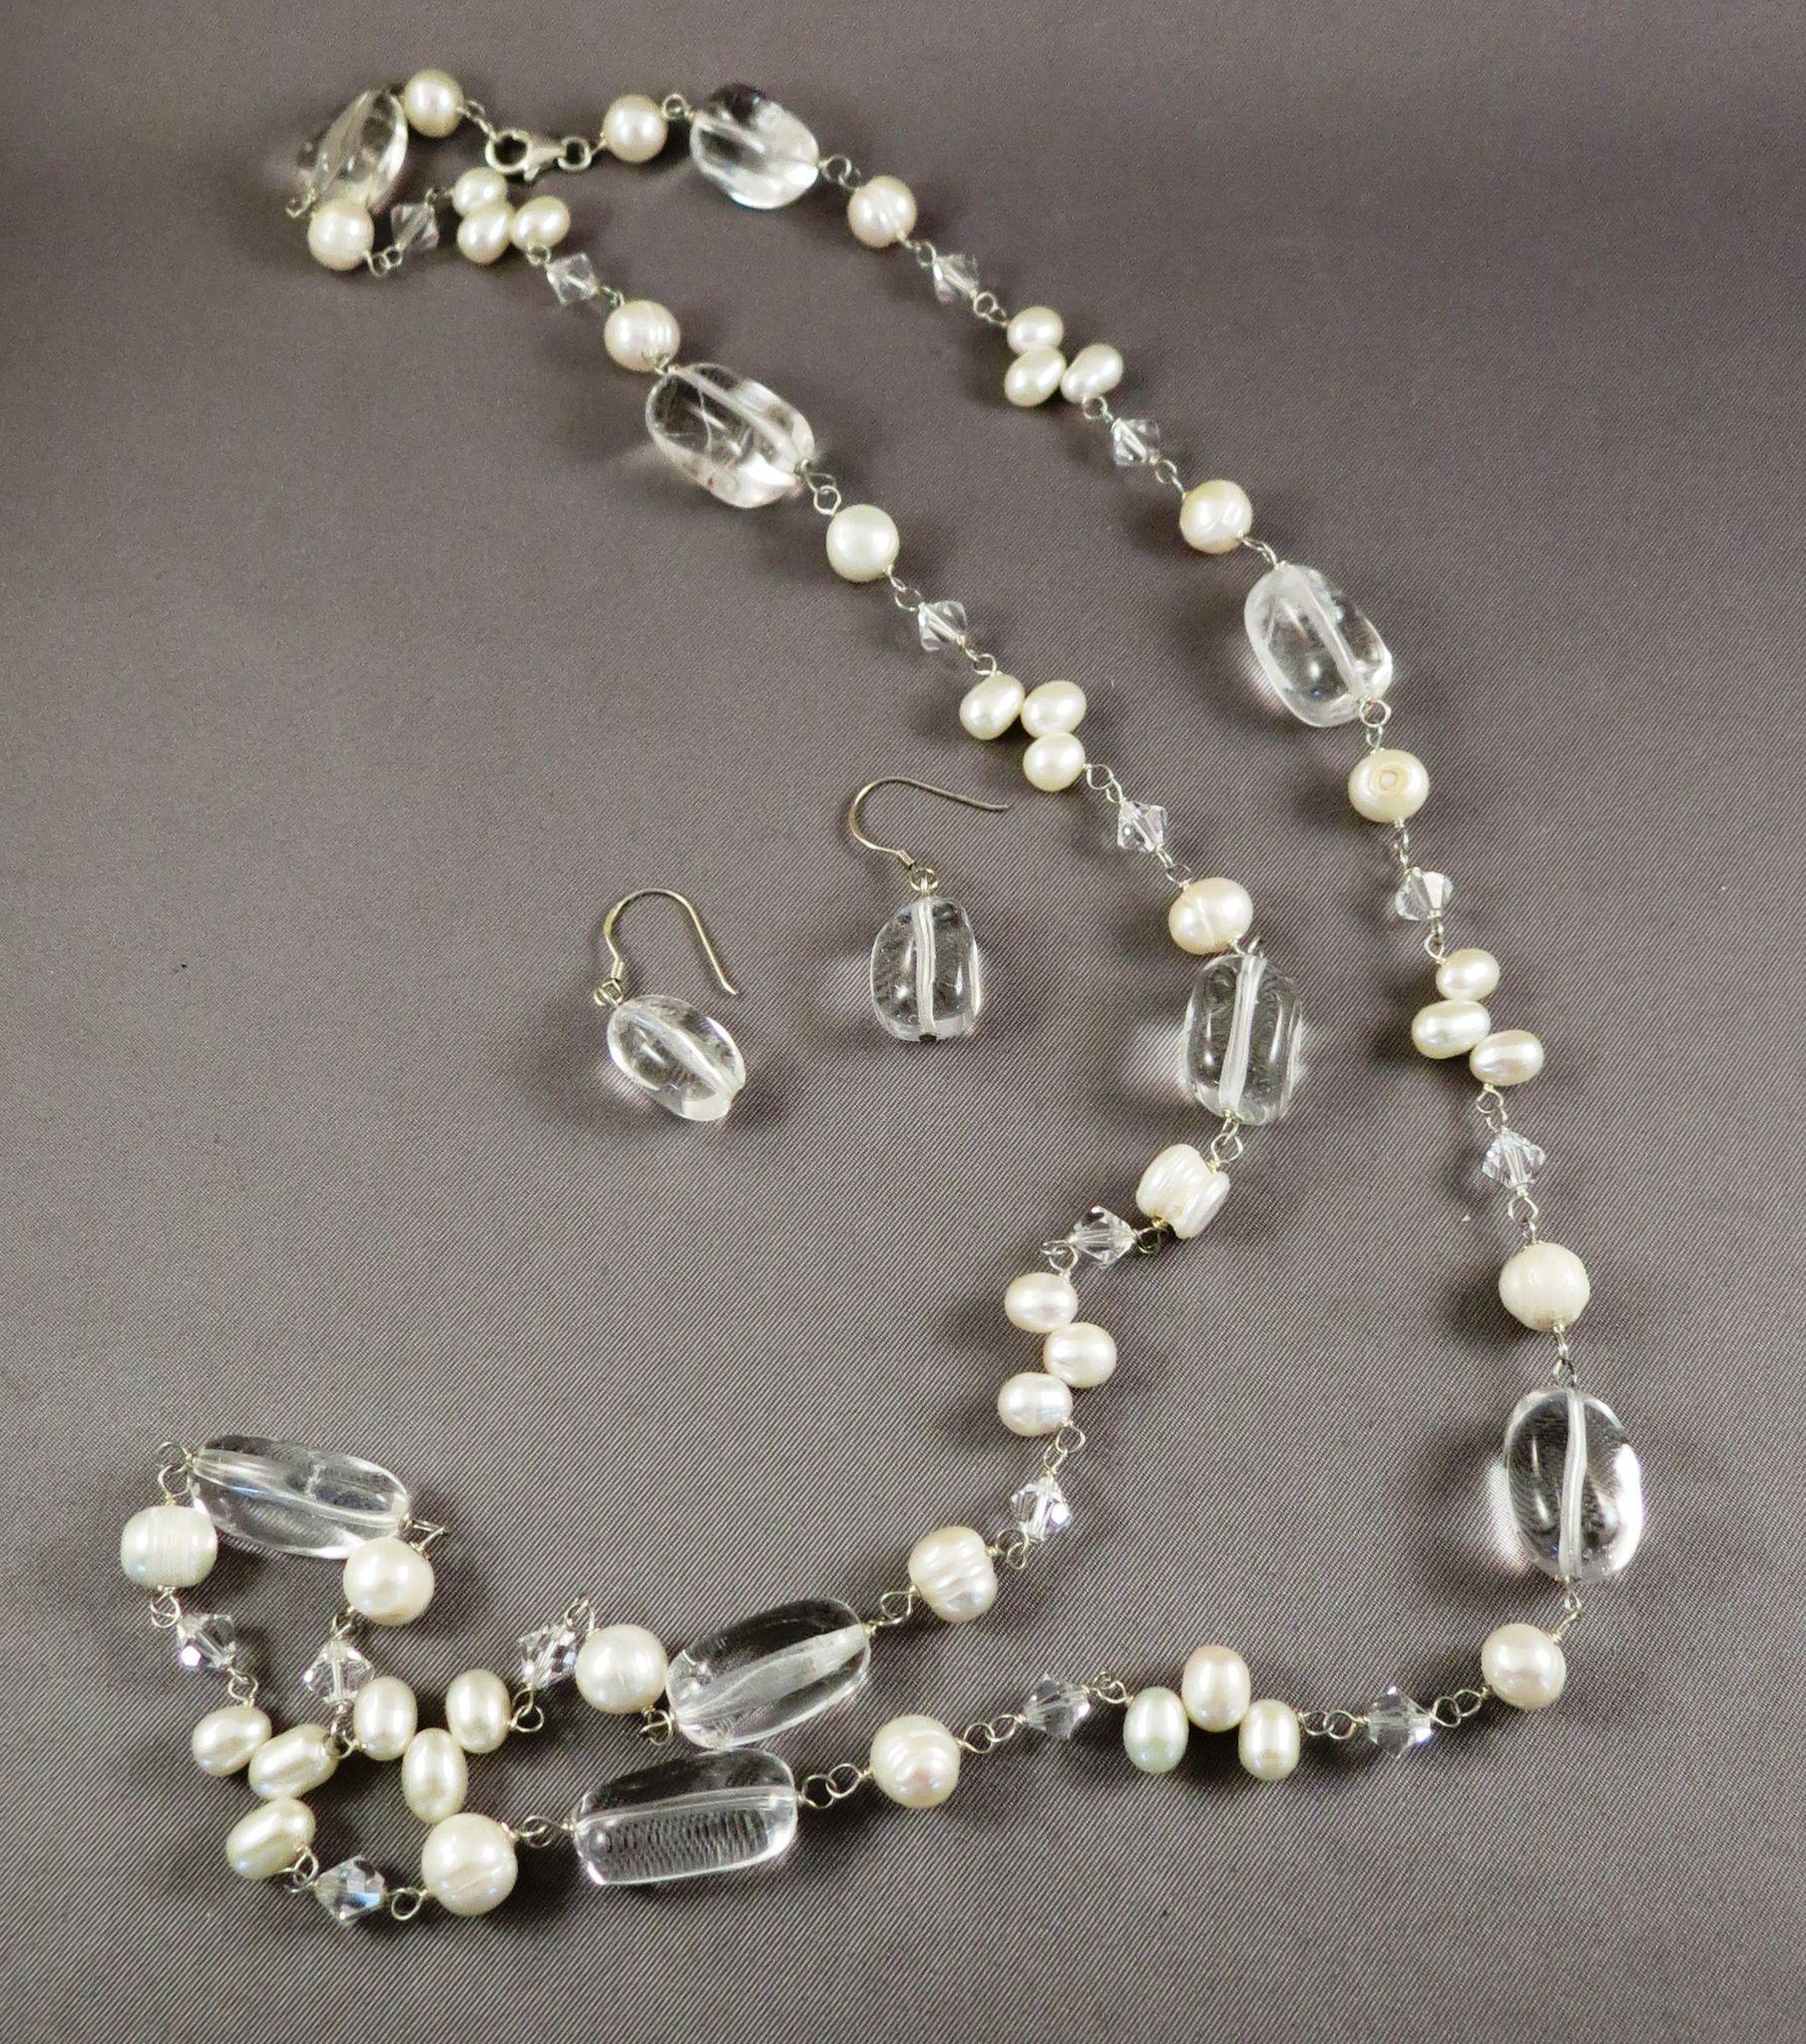 VINTAGE Fresh-water Pearls and Quartz Crystal Necklace and Earrings   32 Inches long